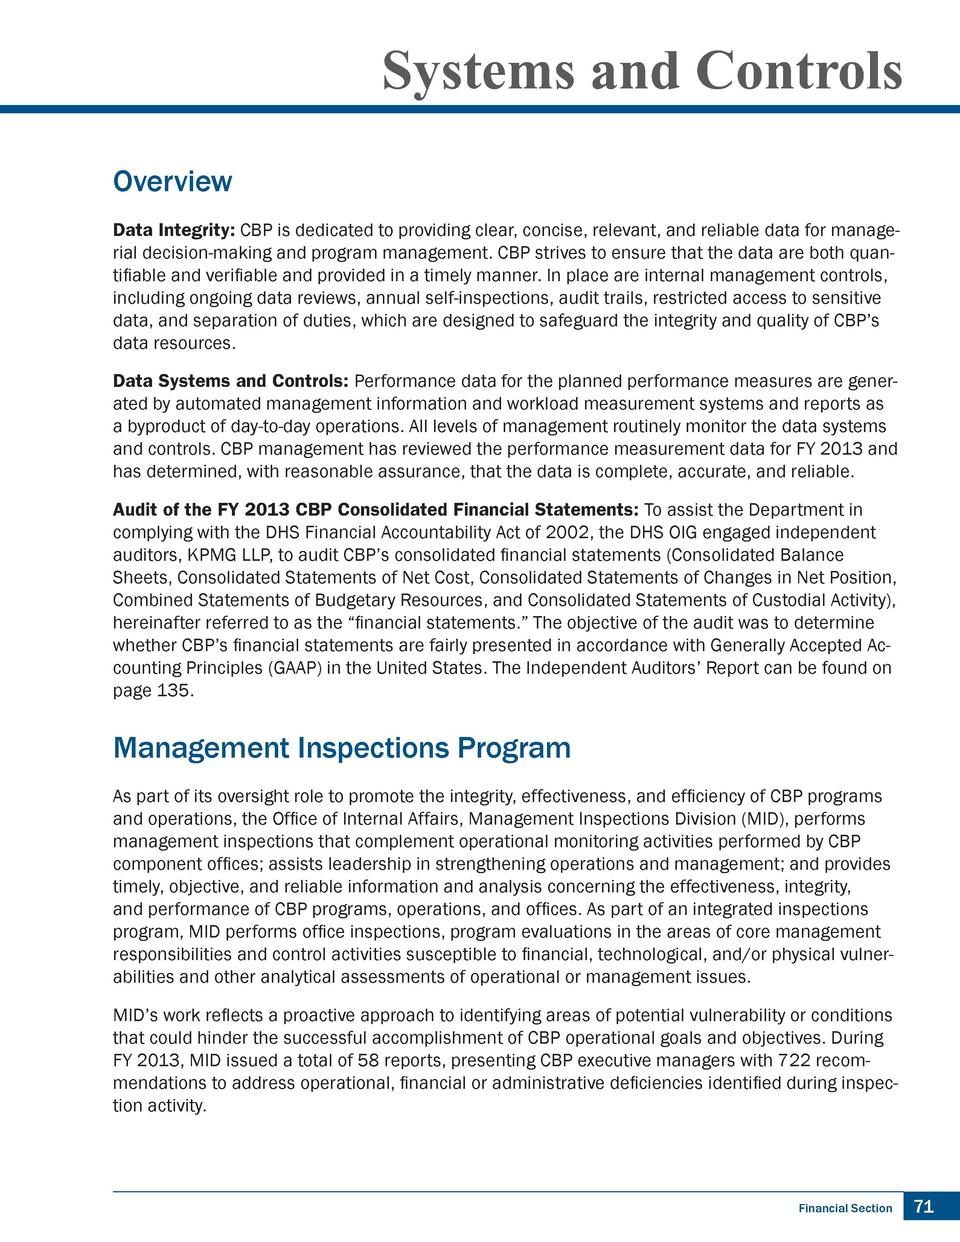 Systems and Controls Overview Data Integrity  CBP is dedicated to providing clear, concise, relevant, and reliable data fo...